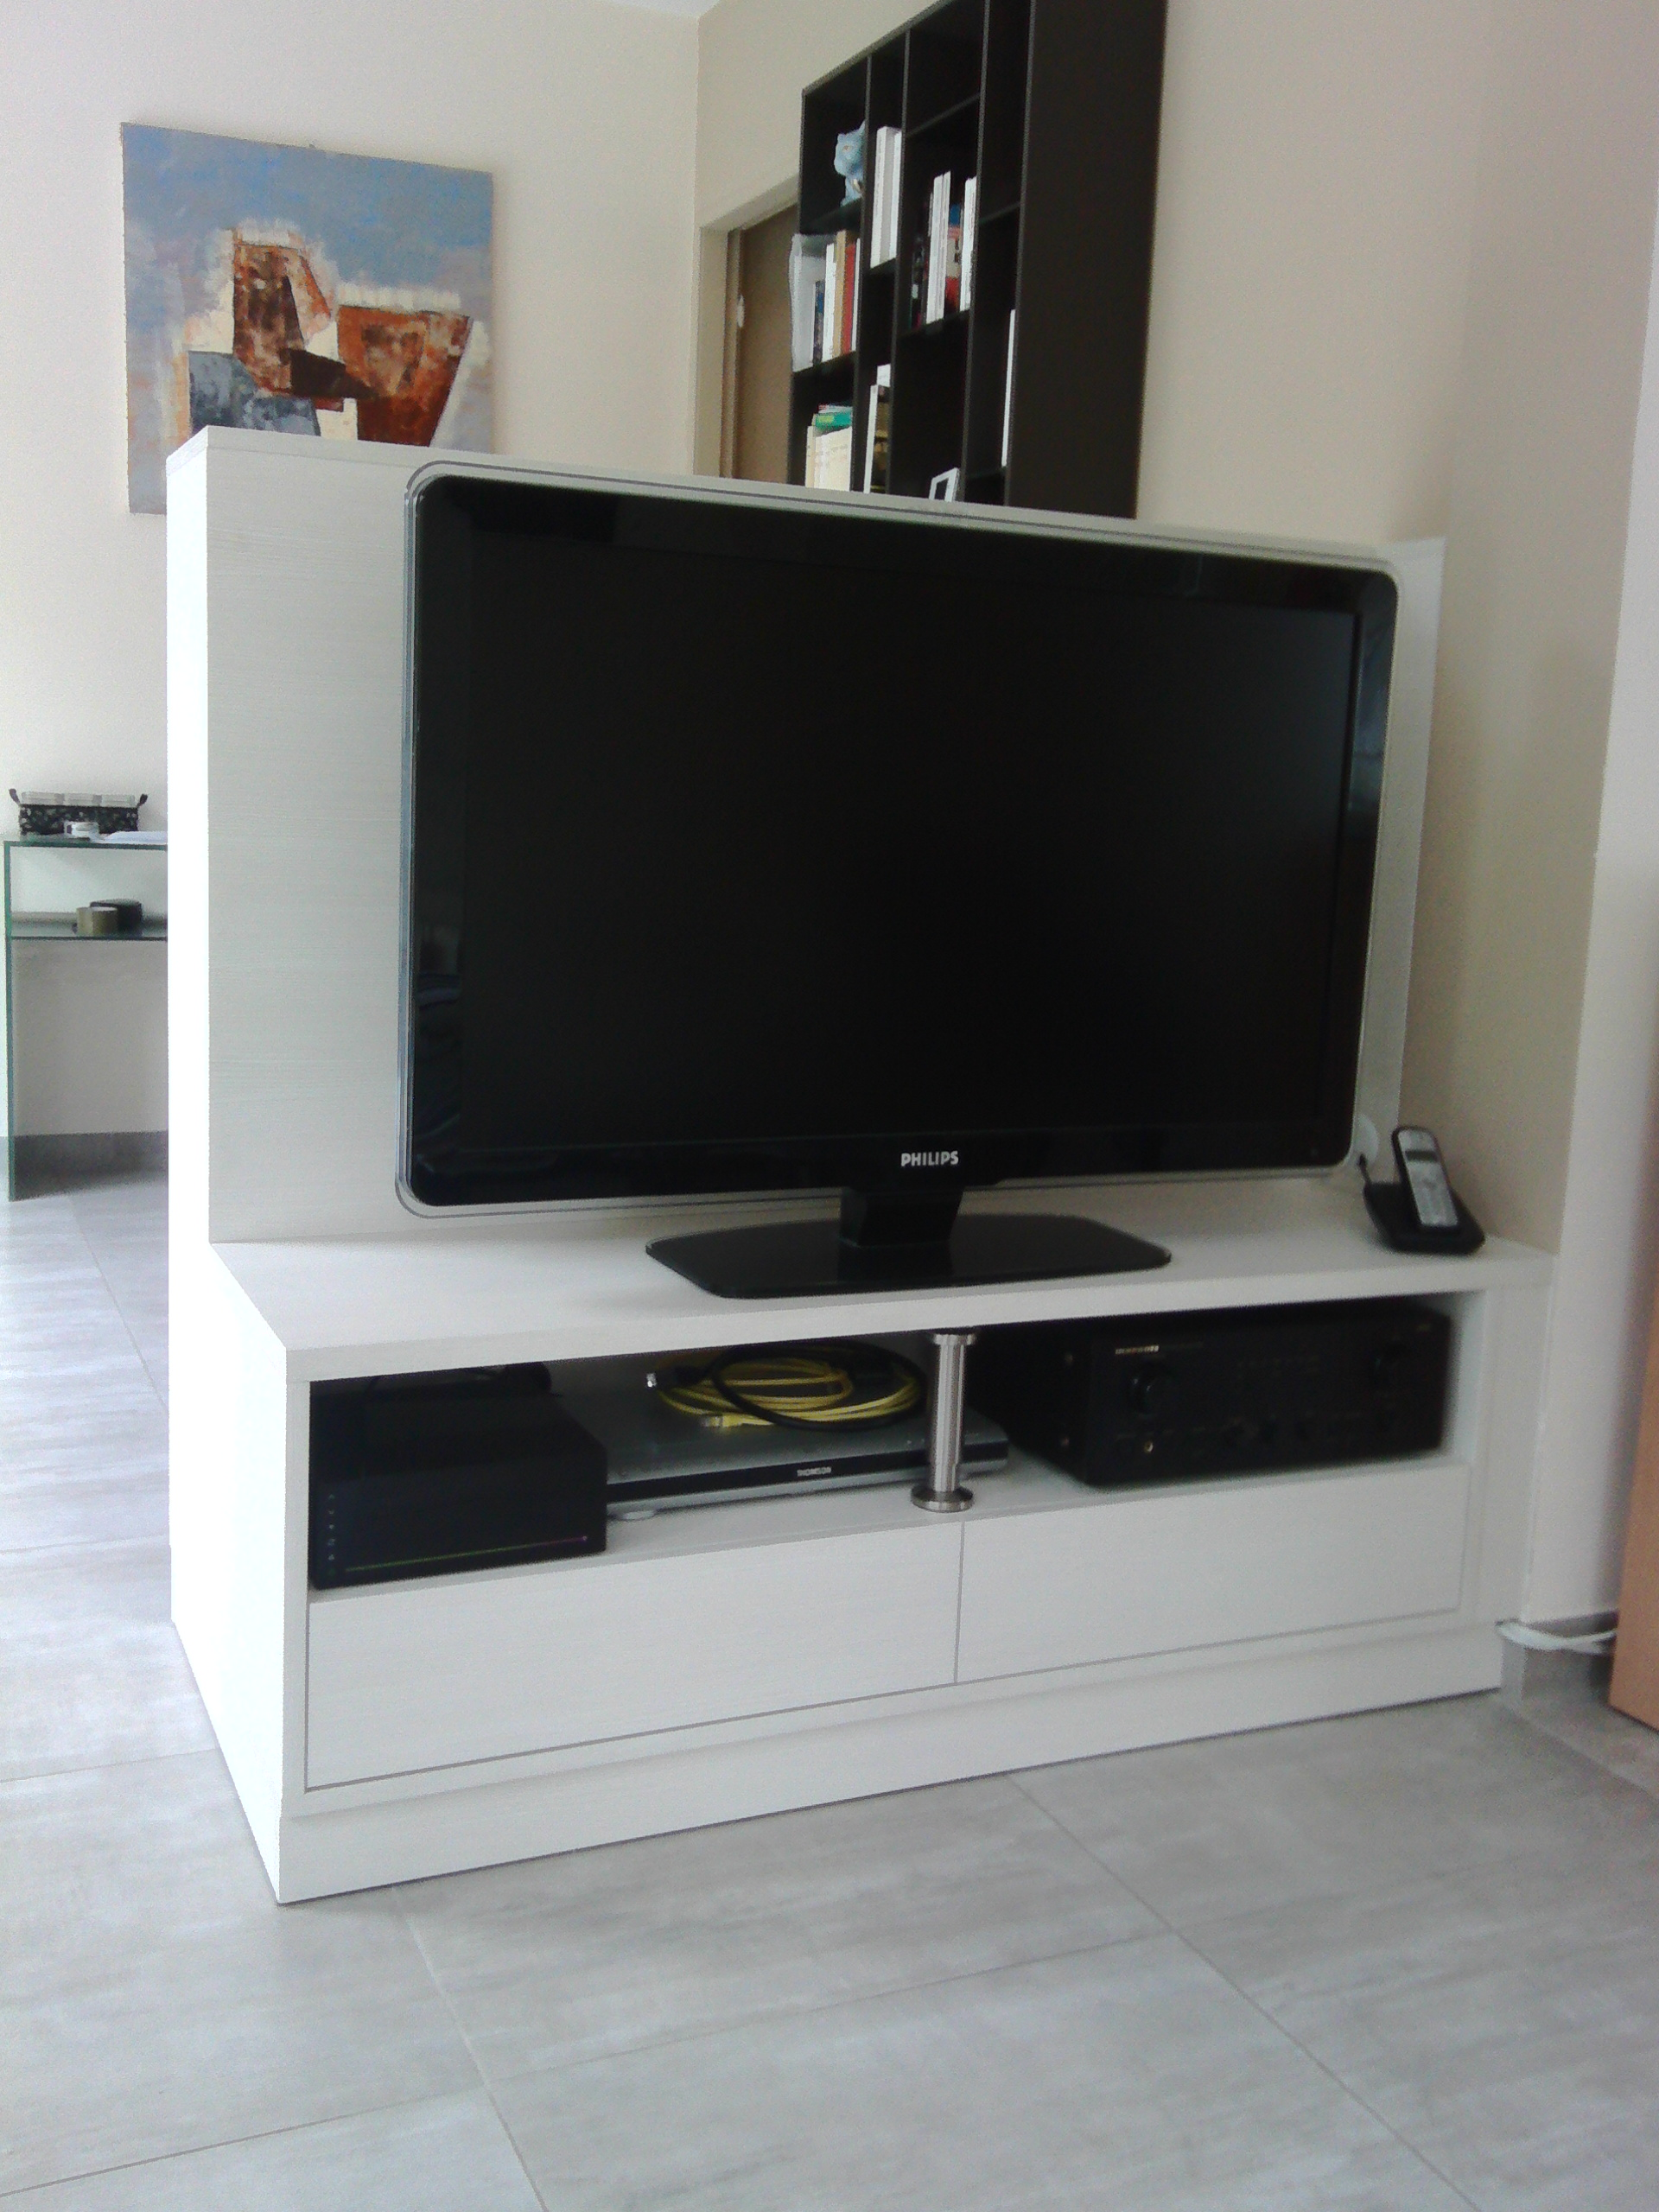 meuble tv separation de piece photos de conception de maison. Black Bedroom Furniture Sets. Home Design Ideas